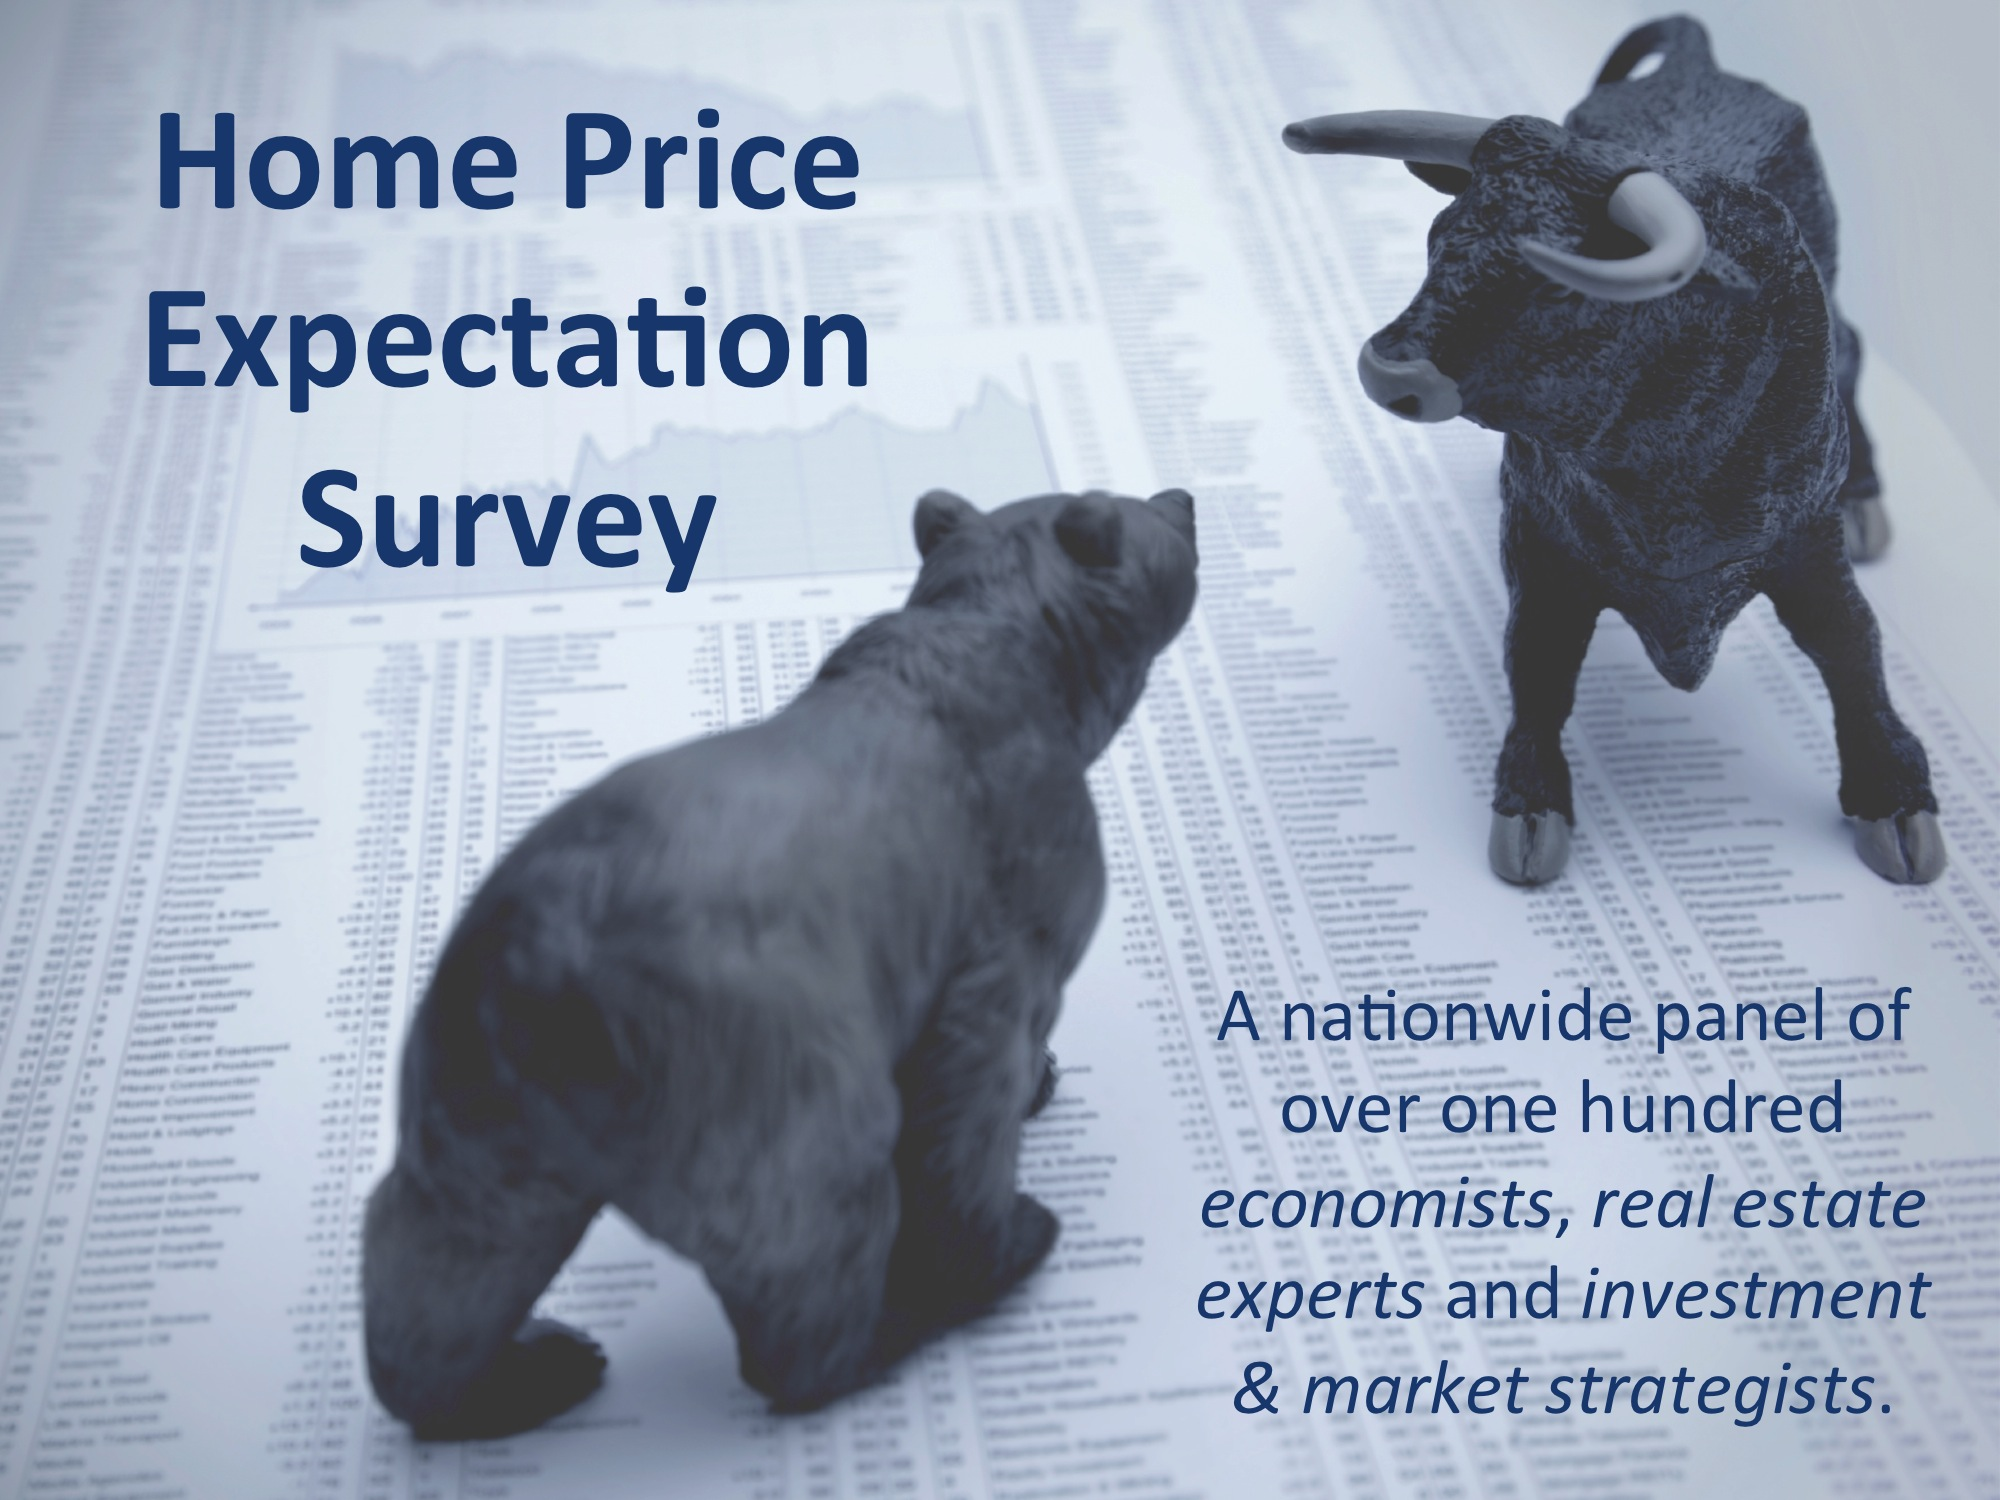 (English) Where Do Experts Say Home Prices are Headed?